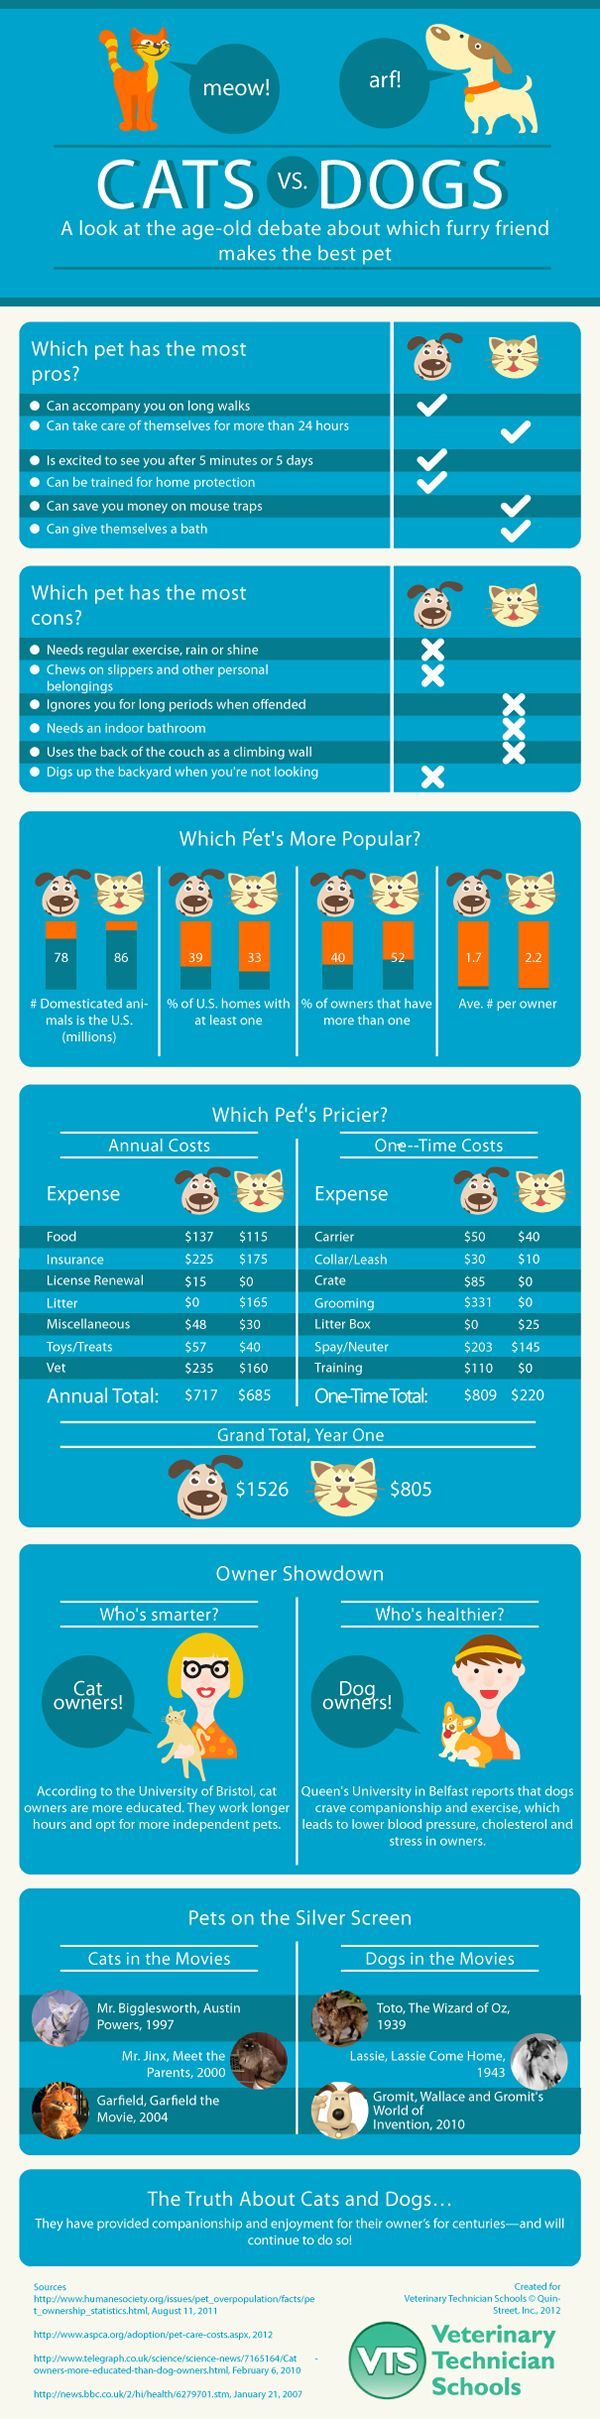 Cats vs dogs: Which pet is superior?    Cat owners are smarter. Dog owners are healthier. Cats can take care of themselves for longer than 24 hours. Dogs are always excited to see you. There are pros and cons to both cats and dogs, and in this infographic, we attempt to answer the age-old question: which is the better pet?